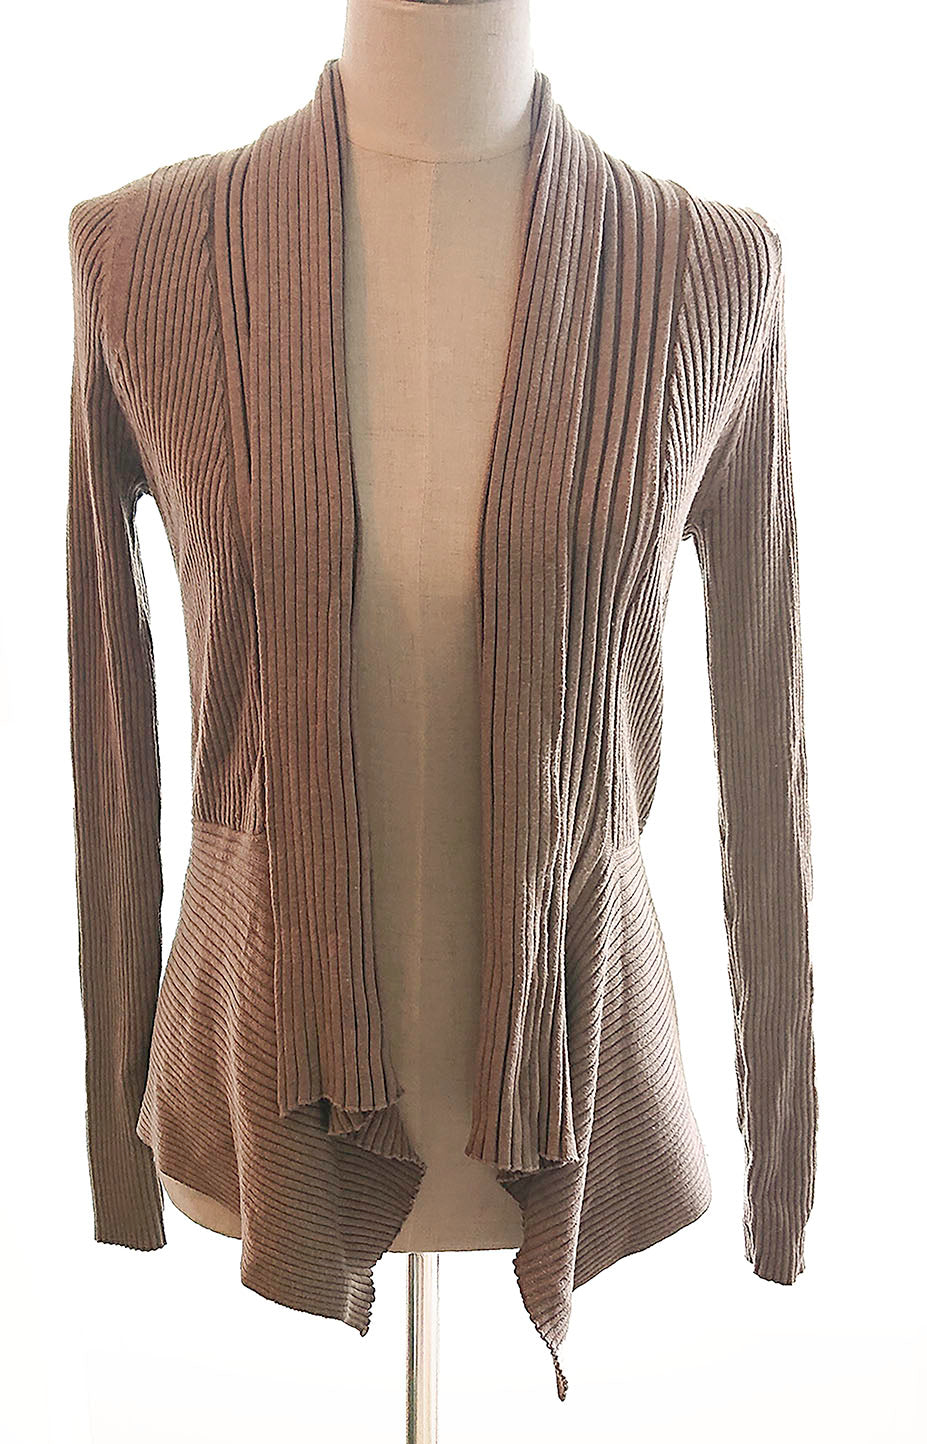 Esprit open cardigan, used